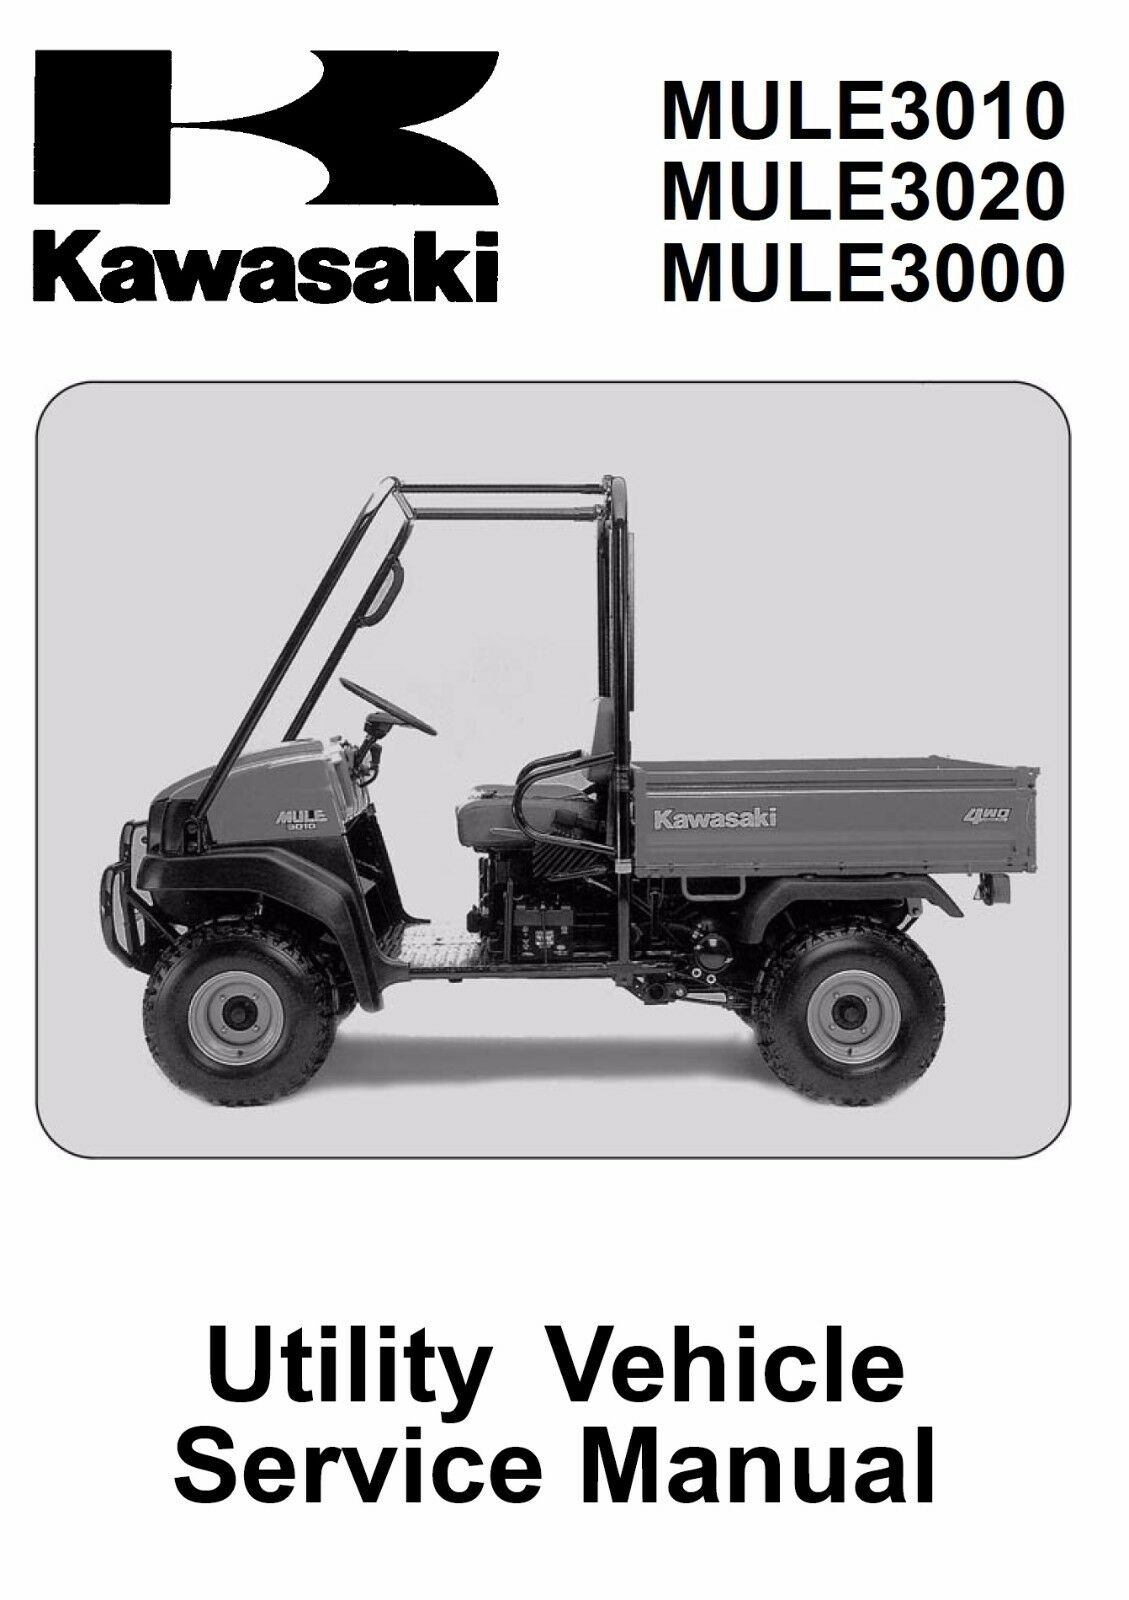 Kawasaki 2001 2002 2003 2004 2005 Mule 3000 3010 3020 service manual in  binder 1 of 4Only 1 available ...